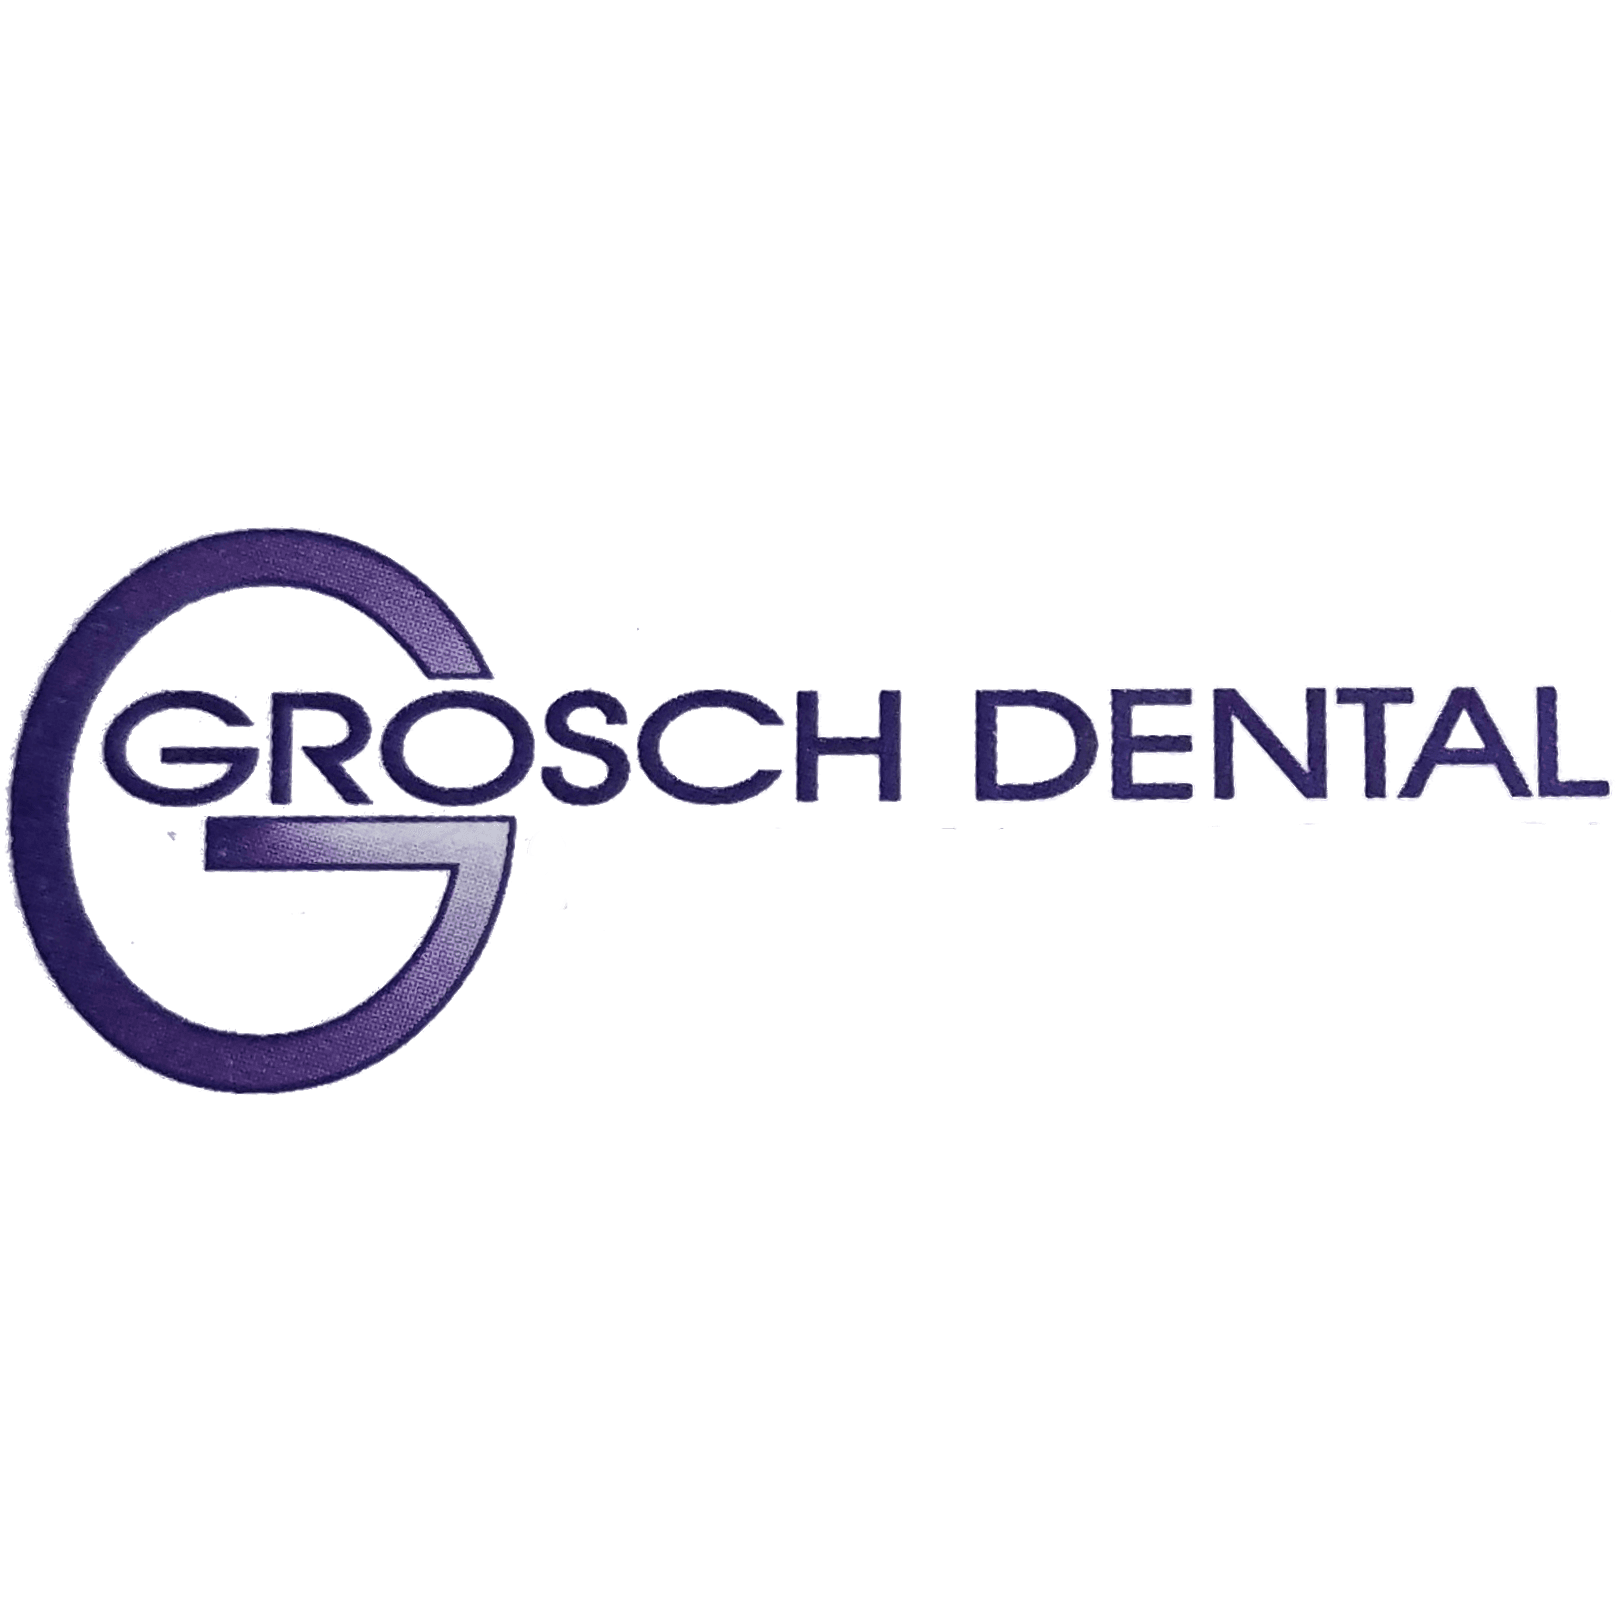 Grosch Dental LLC image 0